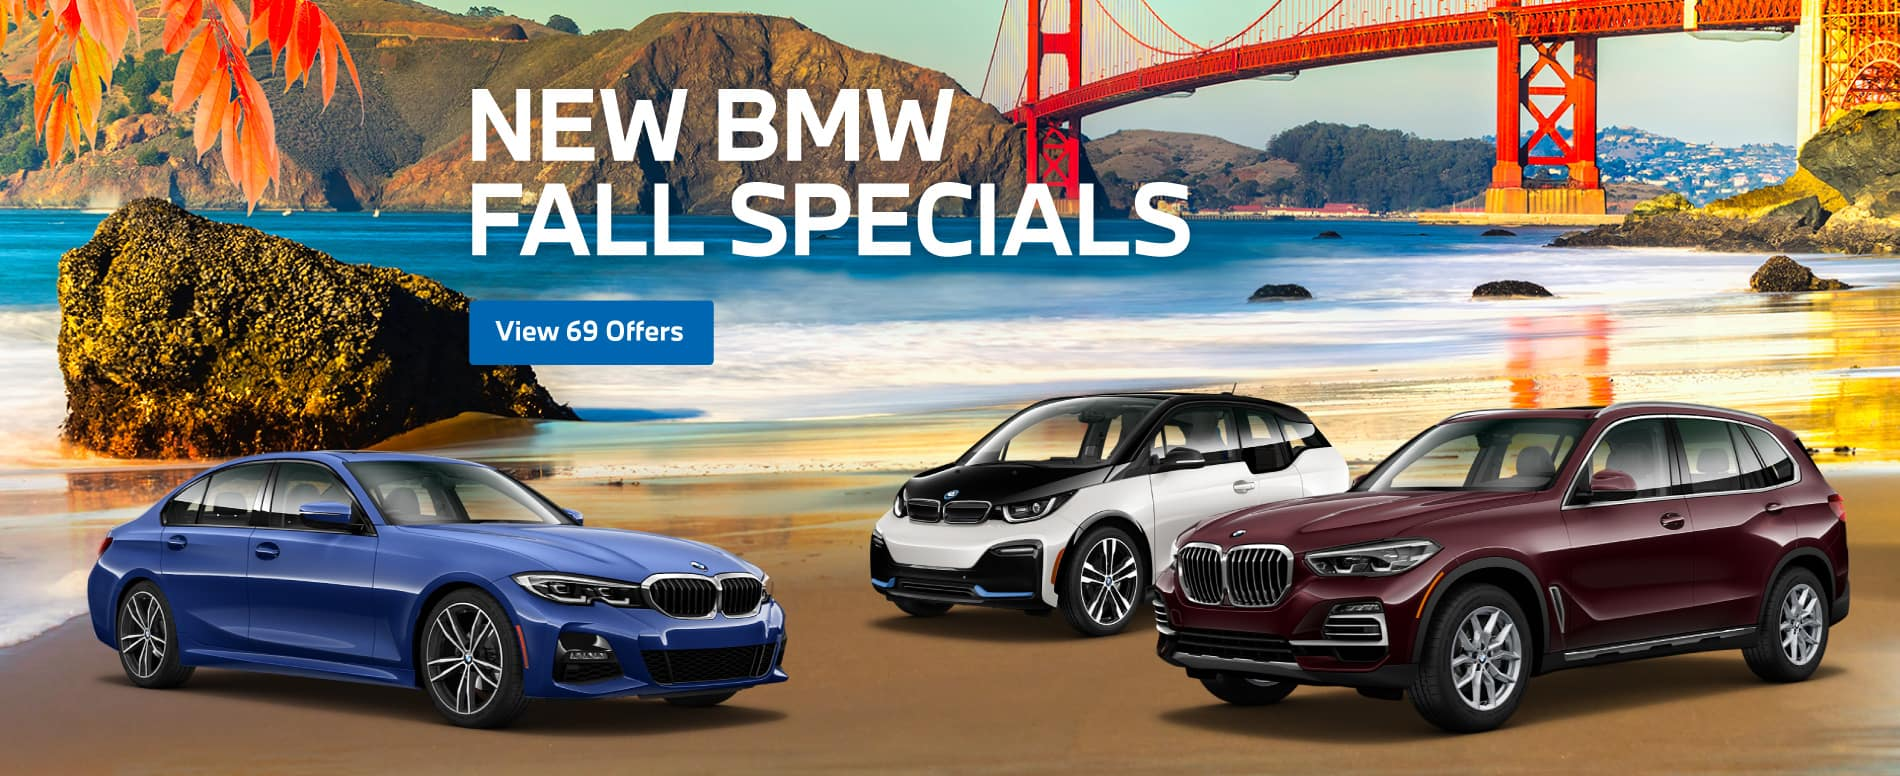 2020-10_BMWSF-New-Specials